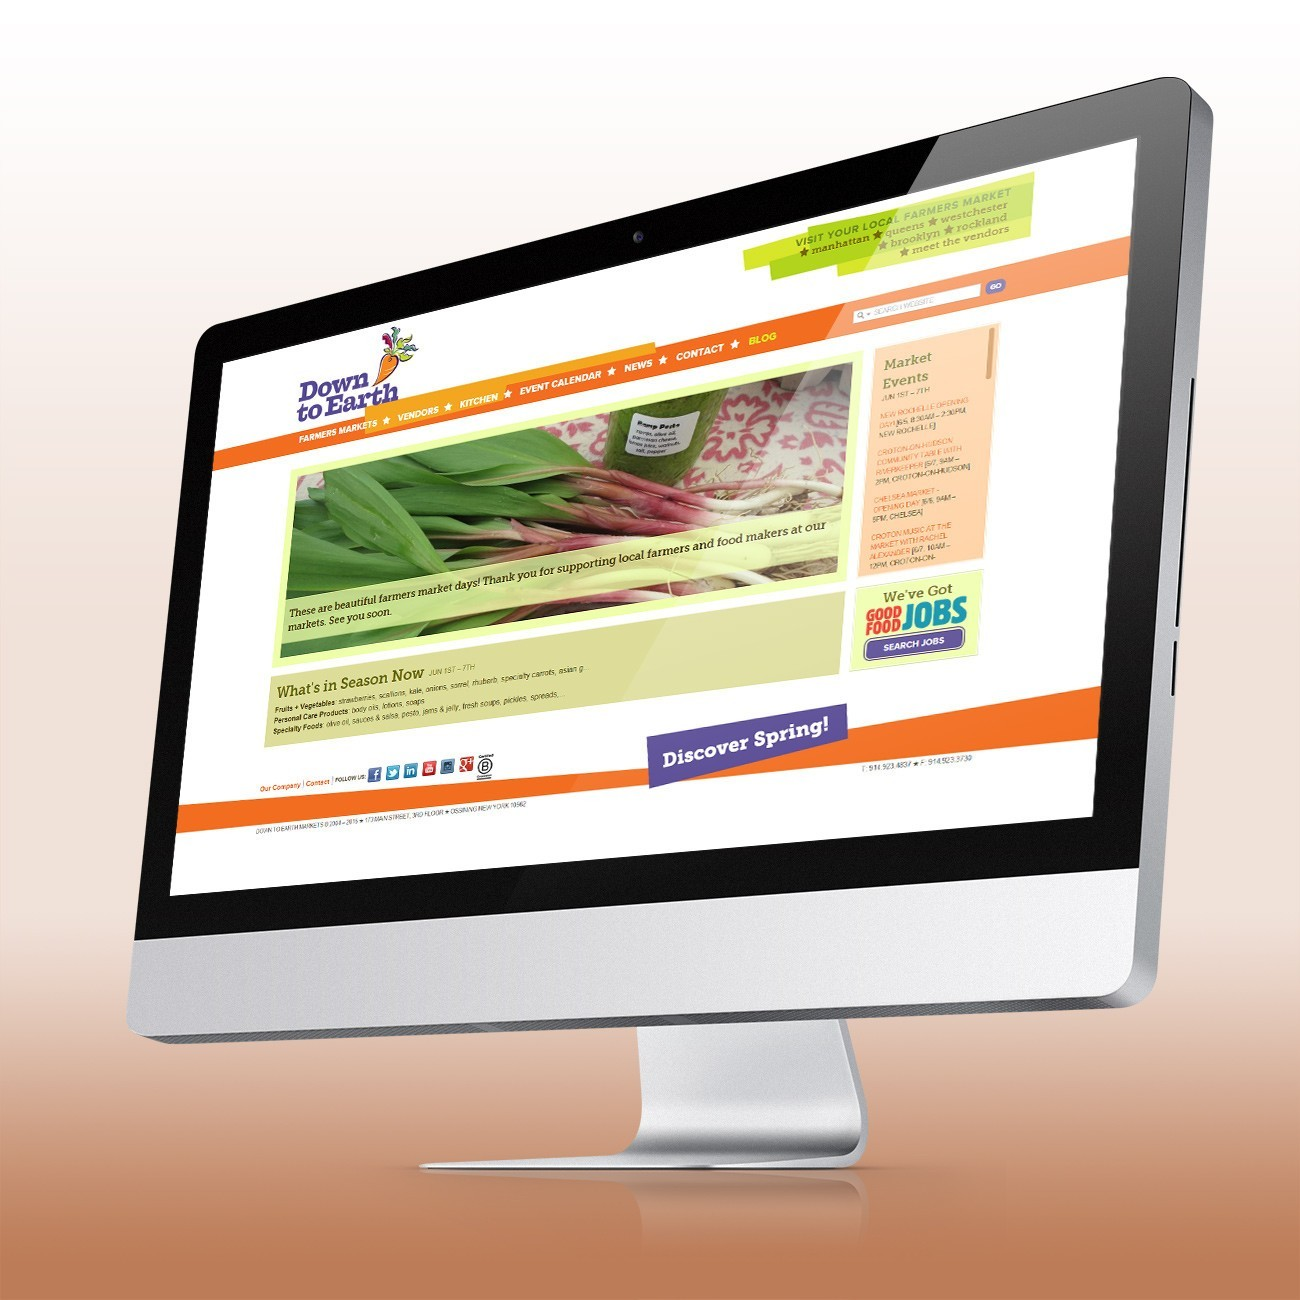 Down to Earth Markets Website, designed by Query Creative in the Hudson Valley